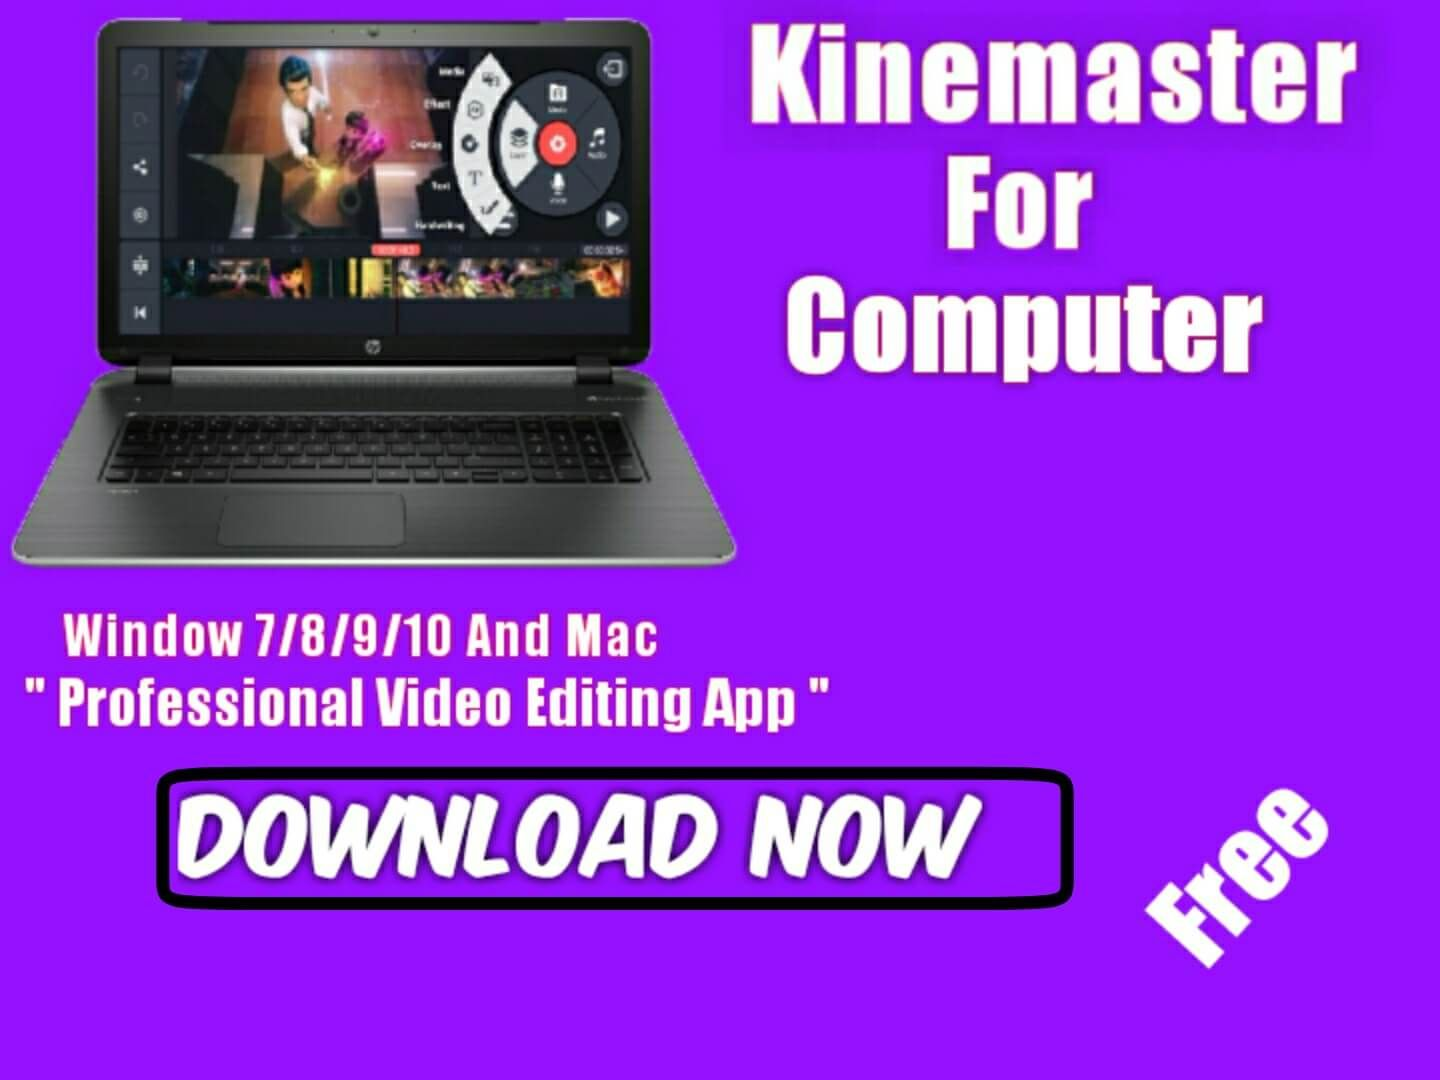 Nowadays, Kinemaster is very popular Professional video